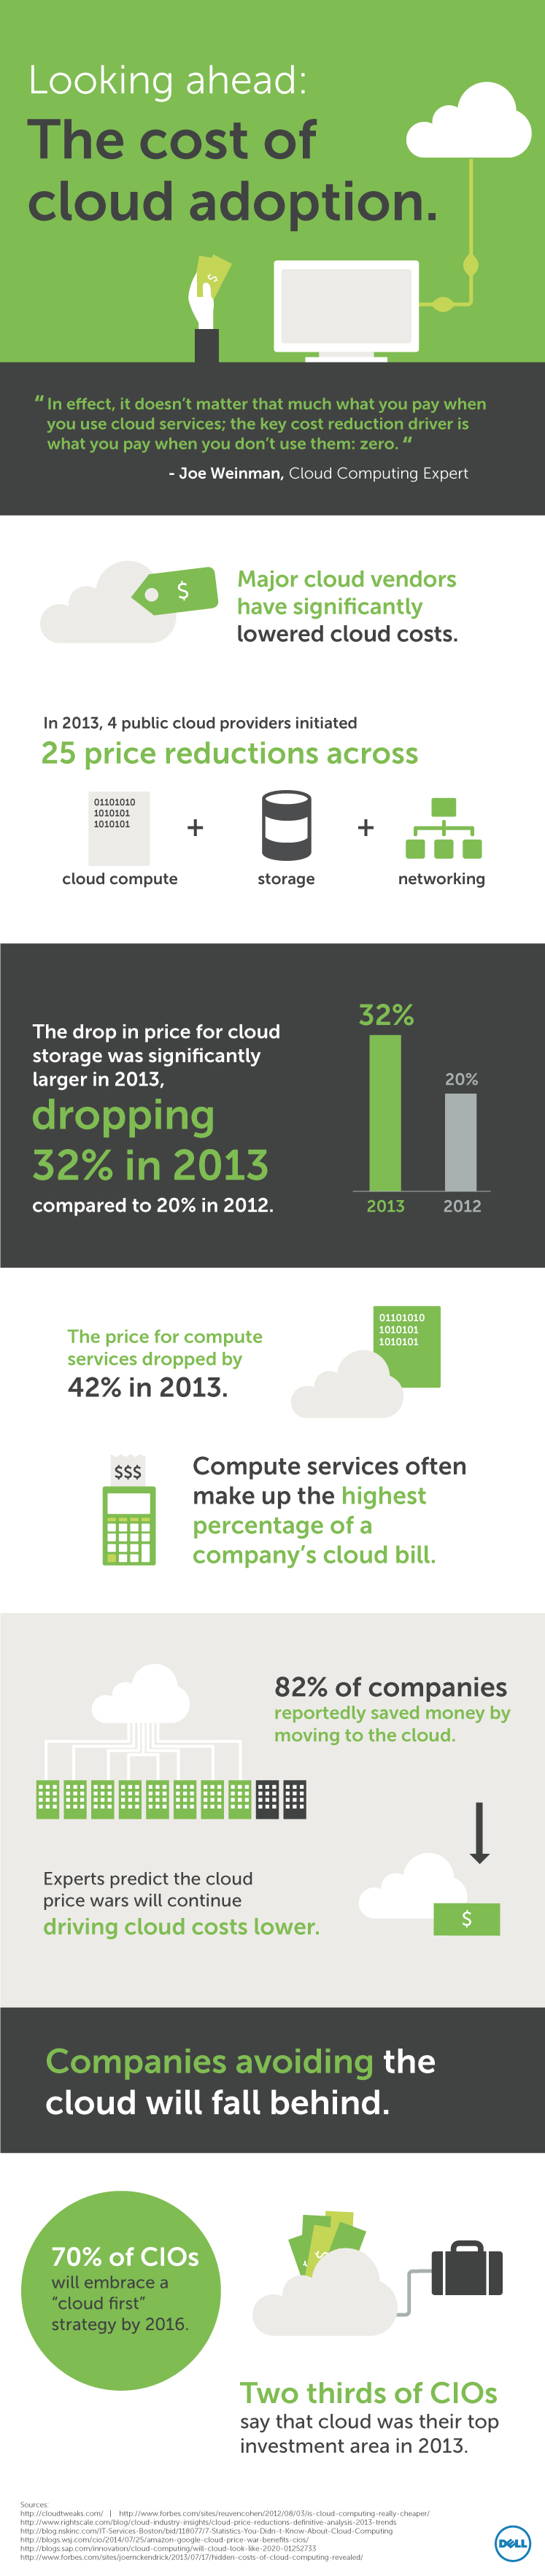 Infographic-cloud-adoption